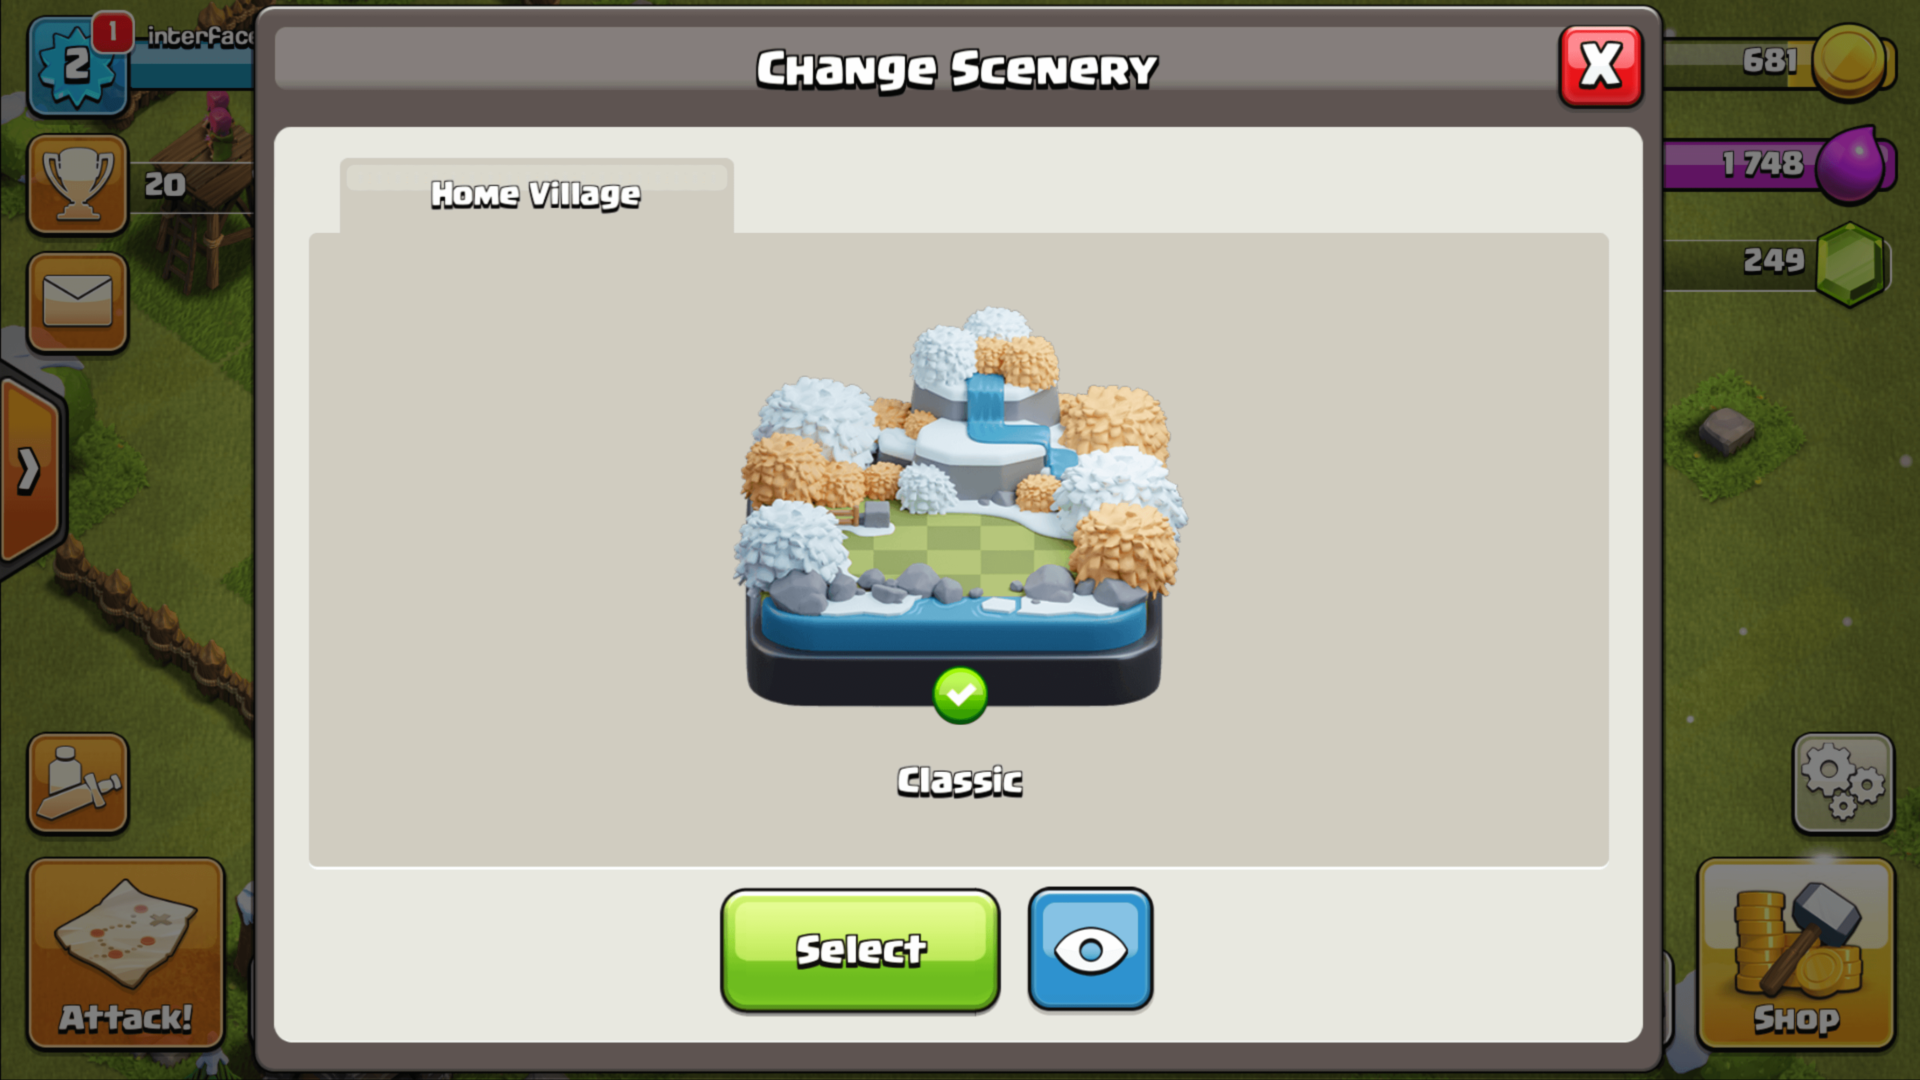 Change scenary screenshot of Clash of Clans video game interface.